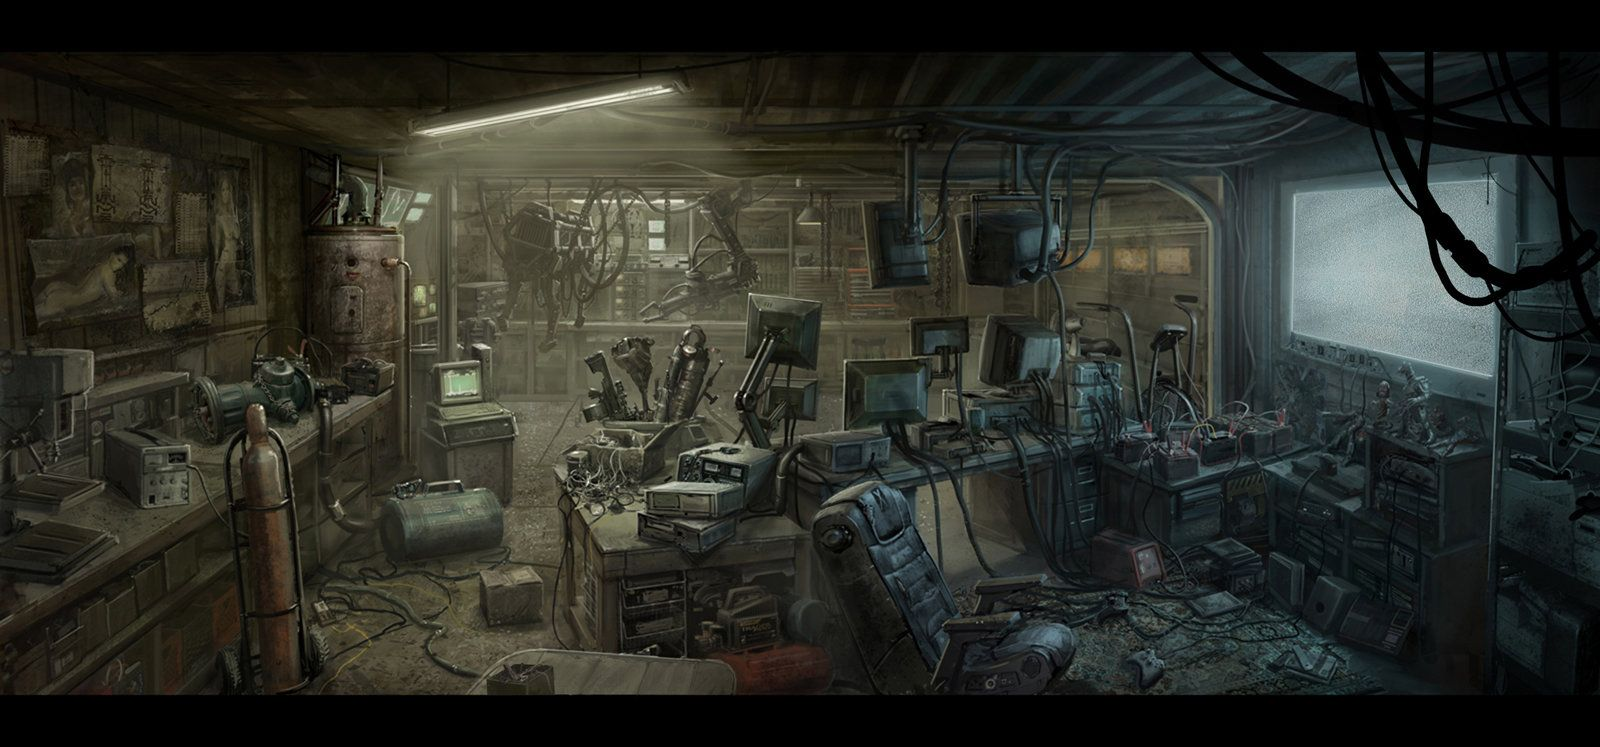 Cinder's mechanic shop Nerdcave, Mac Smith on ArtStation